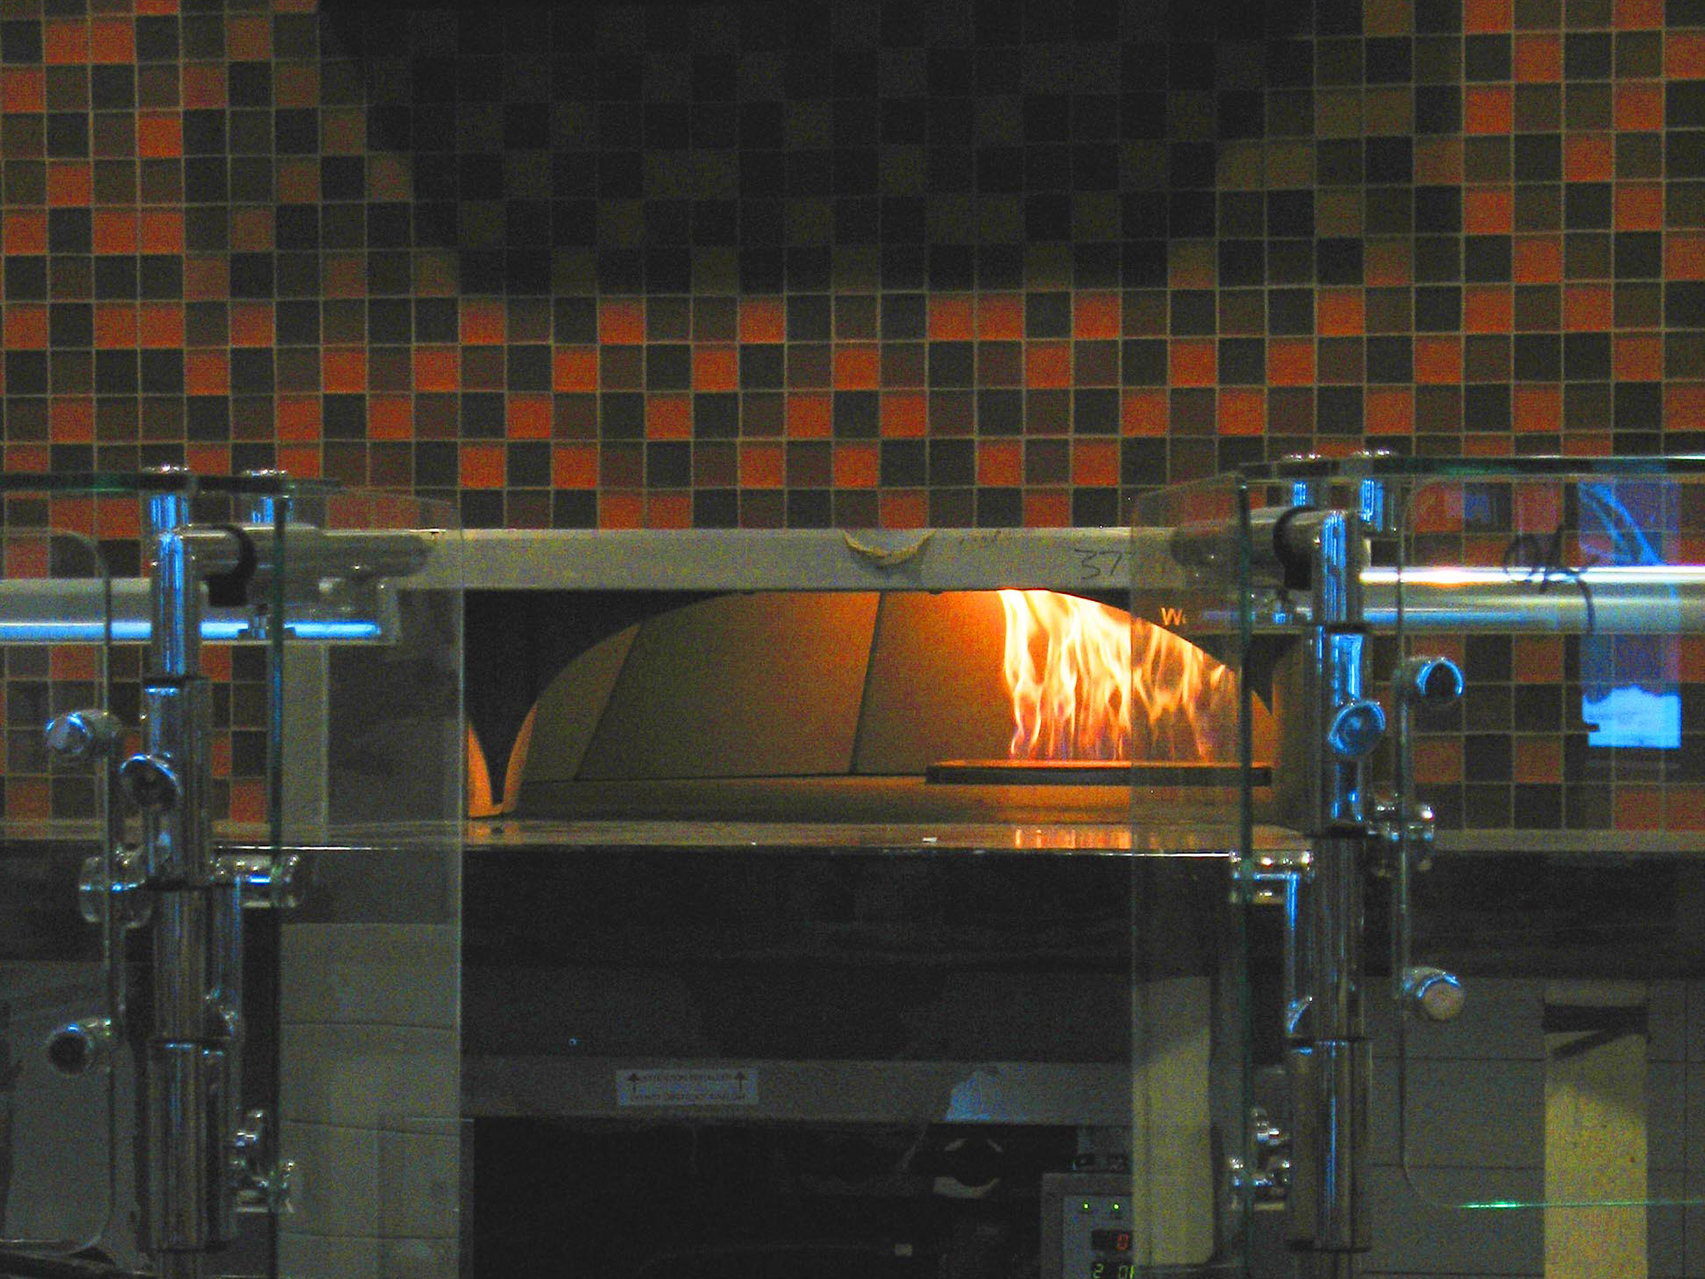 A test burn in the brick oven in the new Commons. (Doug Hubley/Bates College)